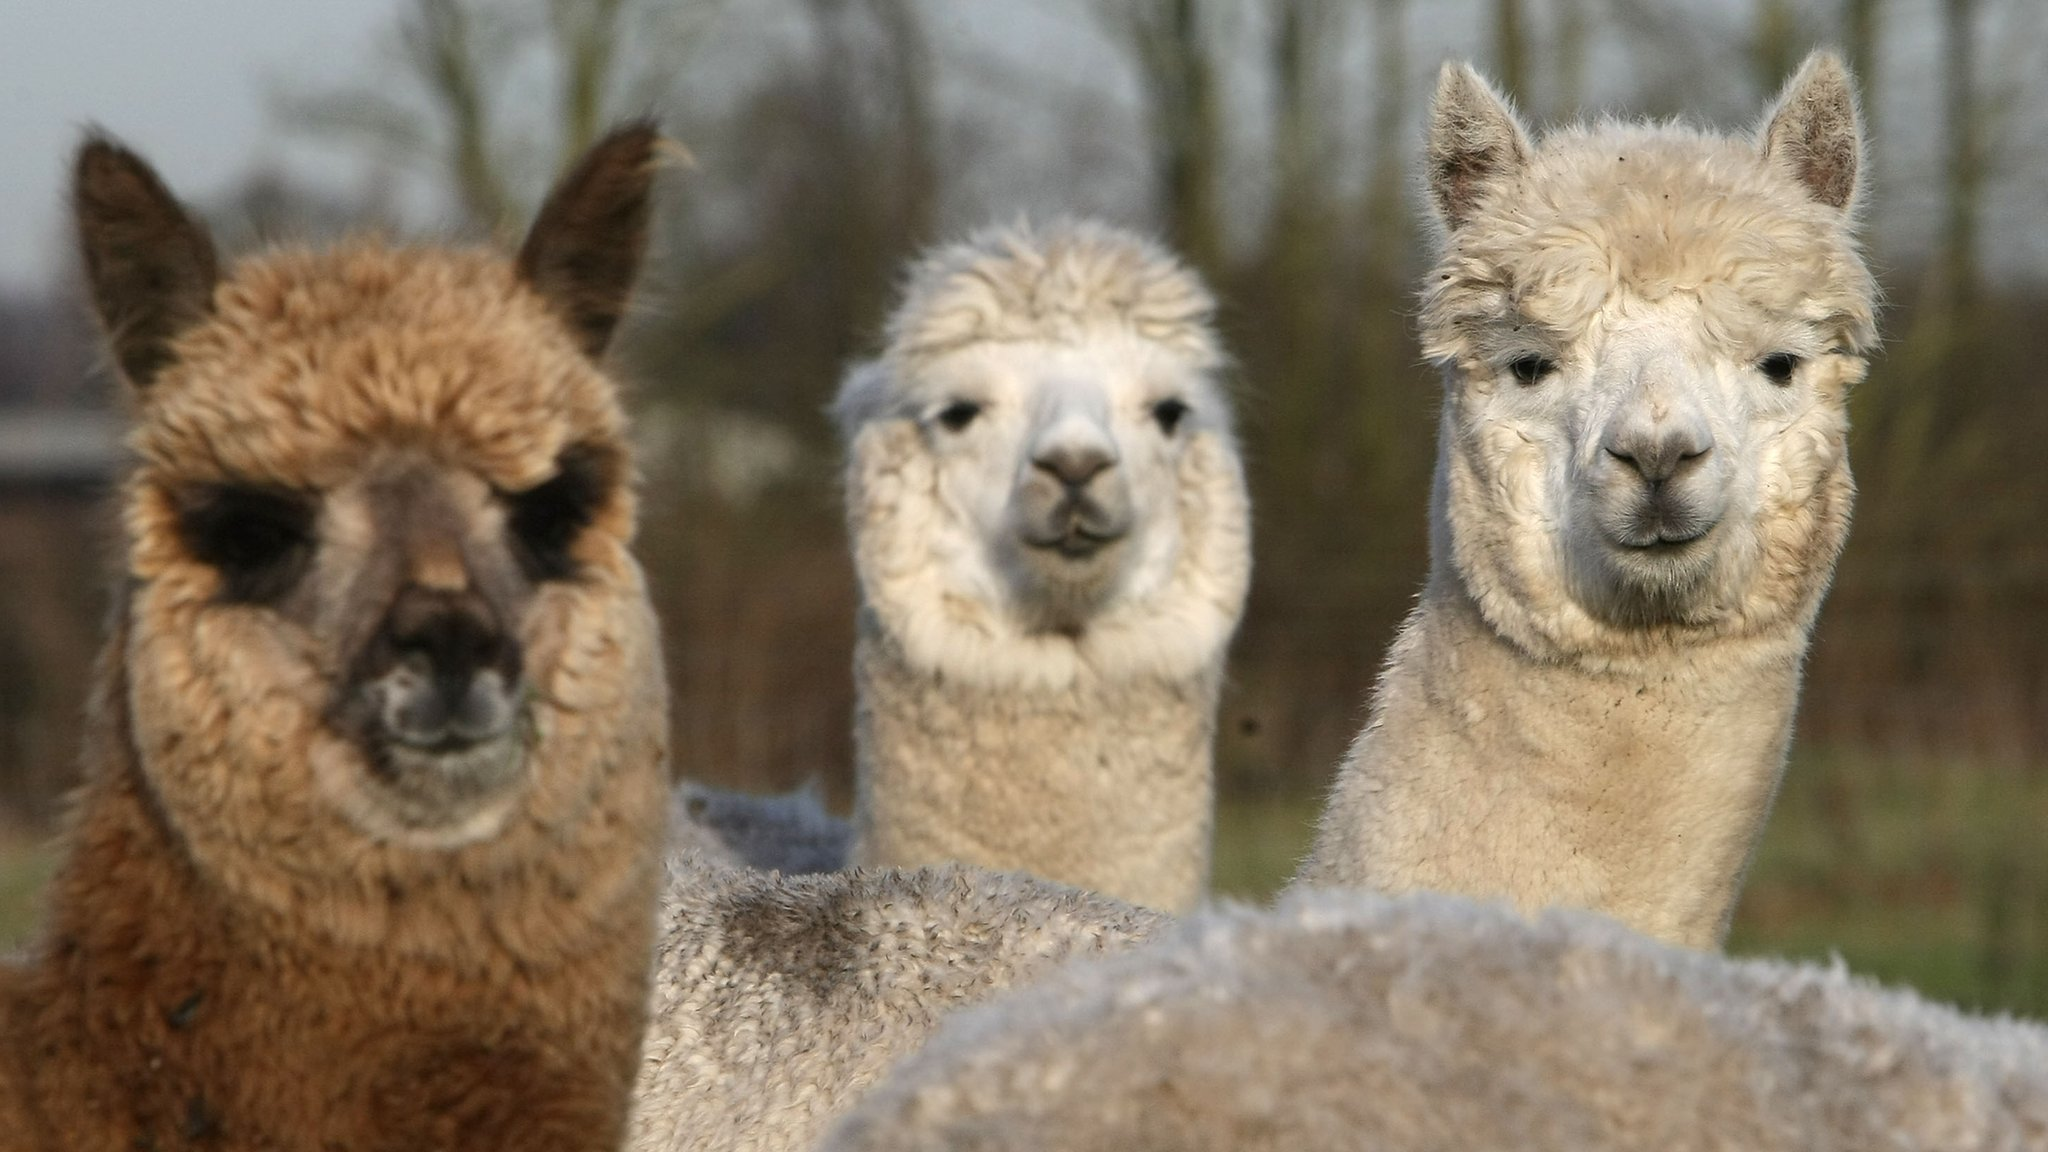 An alpaca walks into a French opticians...